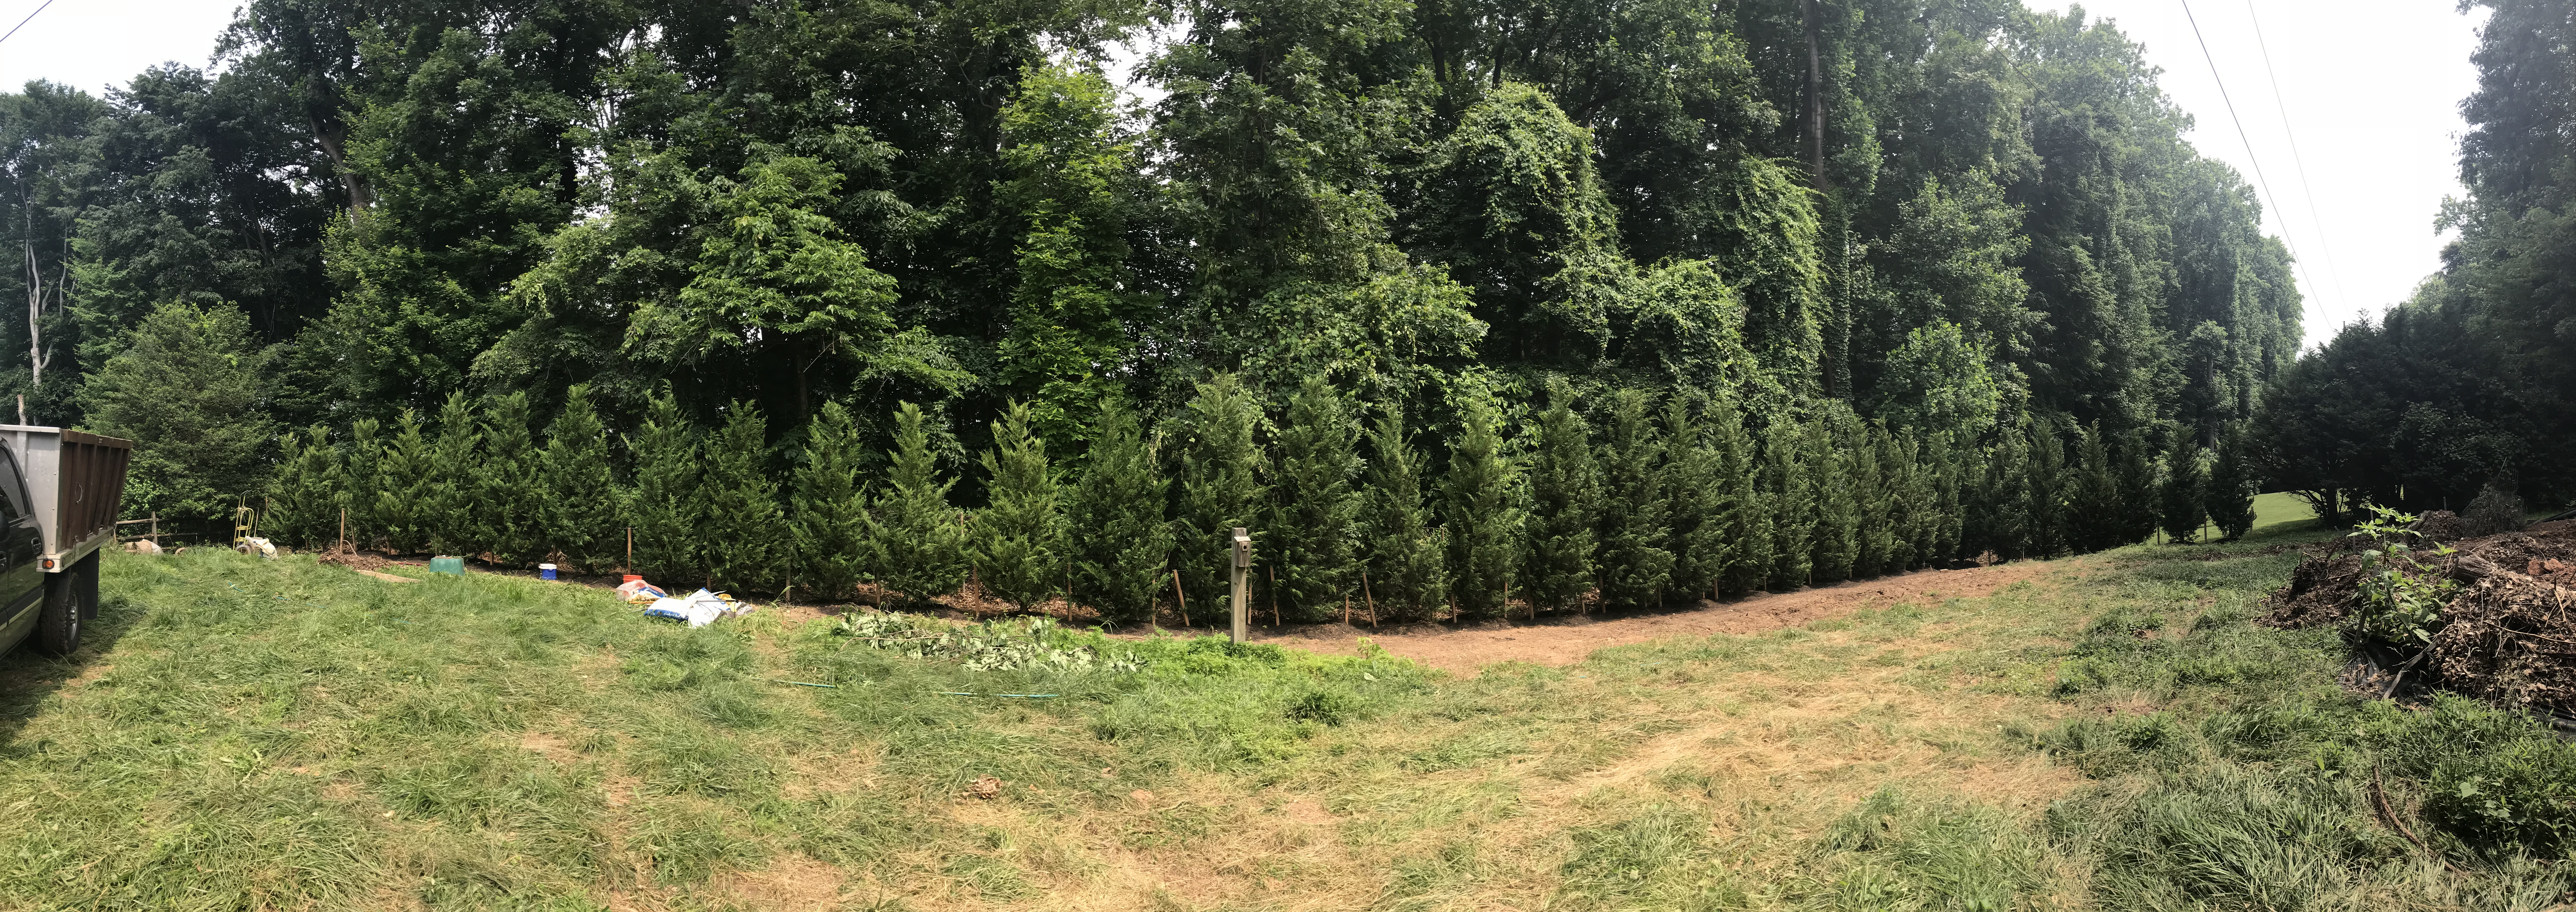 Panoramic view of Leyland Cypress Living Fence installation at a new home for the builder